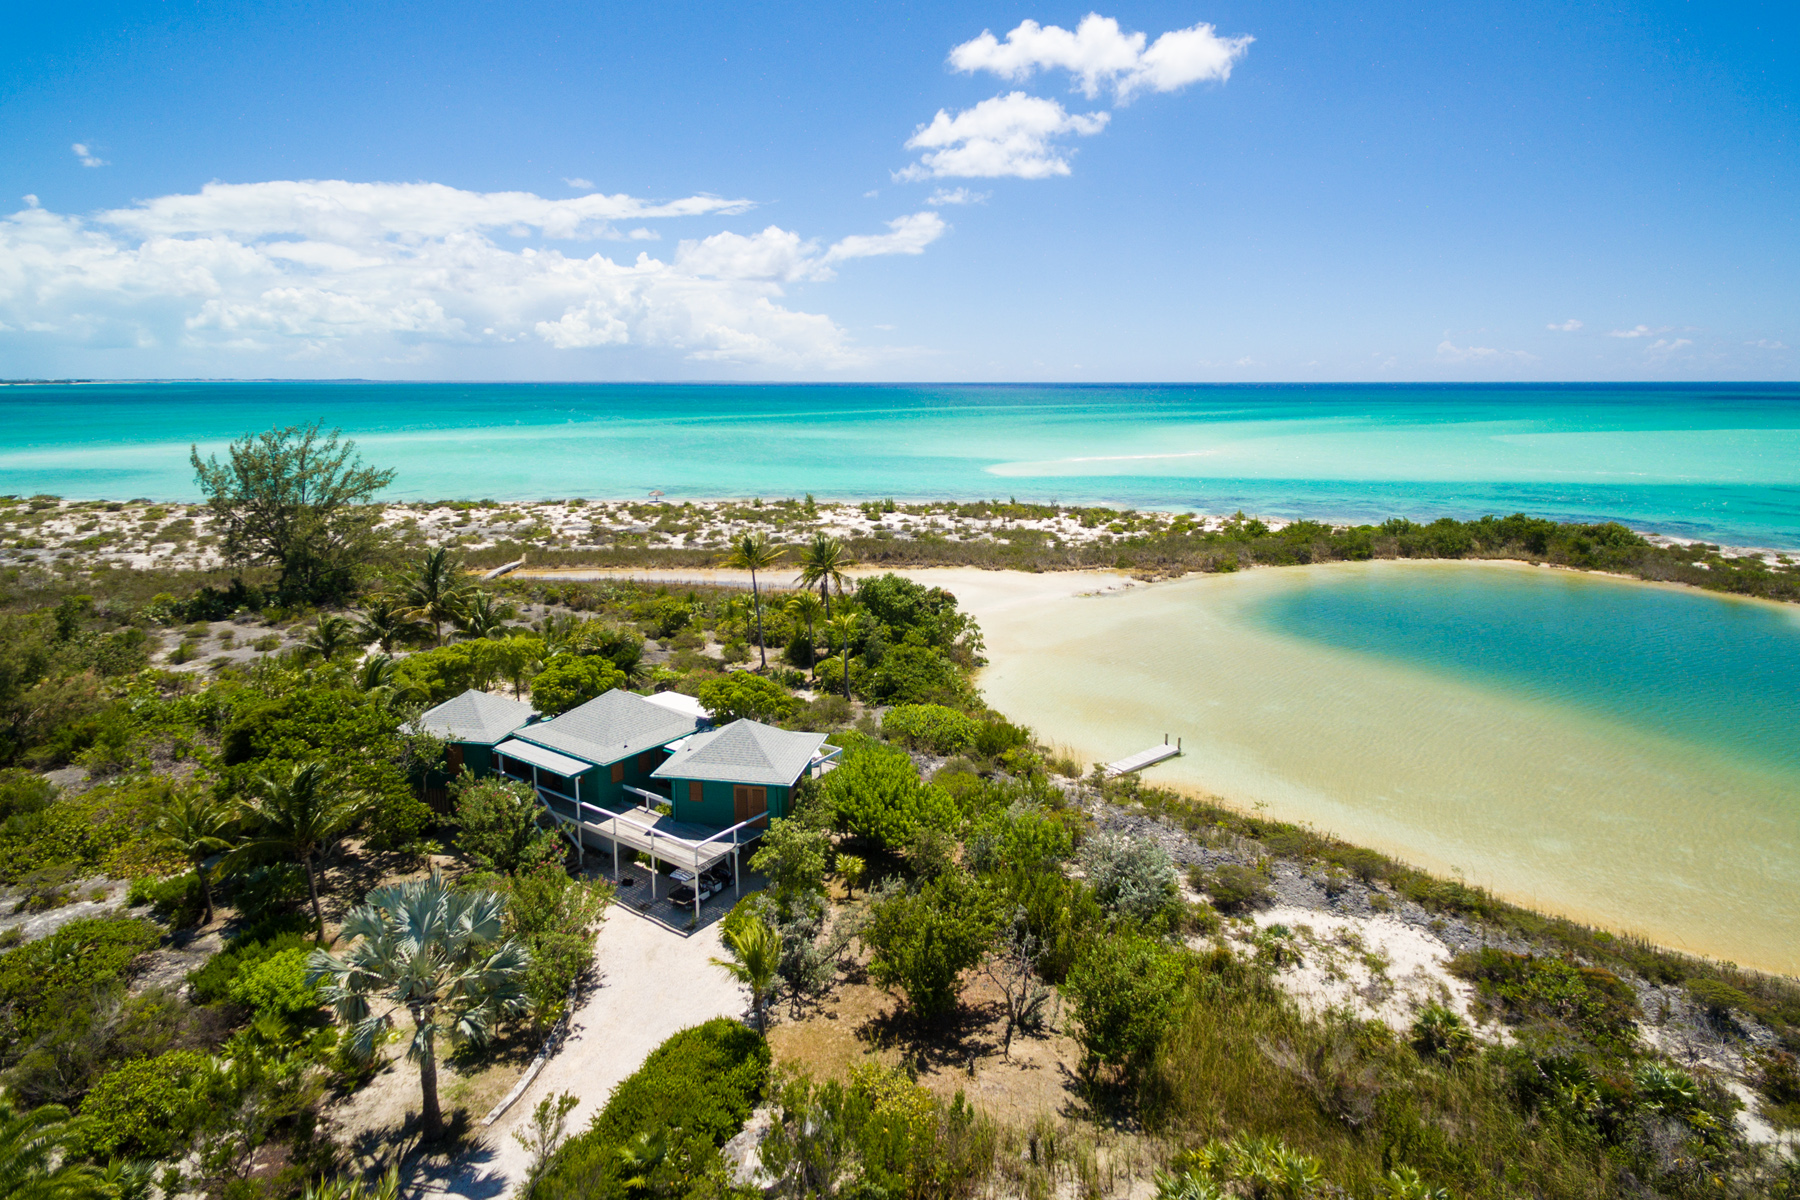 Single Family Home for Sale at Orchid Point Oceanfront Pine Cay, Pine Cay TCI Turks And Caicos Islands